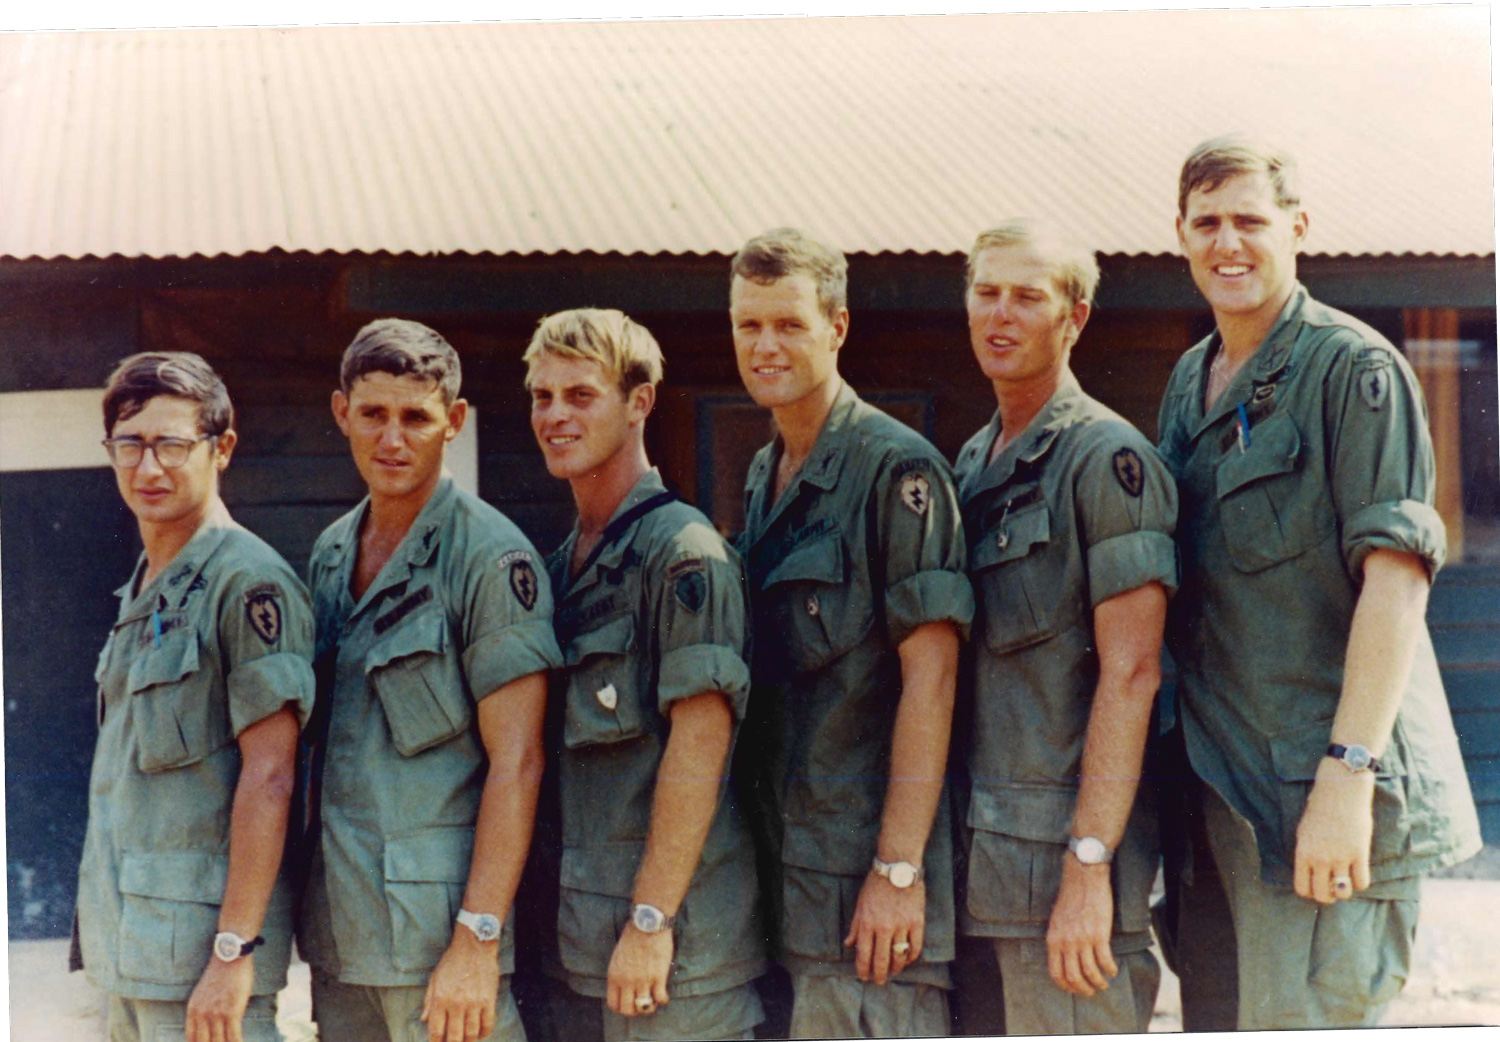 Rick Whitaker (second from right) with West Point classmates in Vietnam, 25th Infantry Division, March 1971